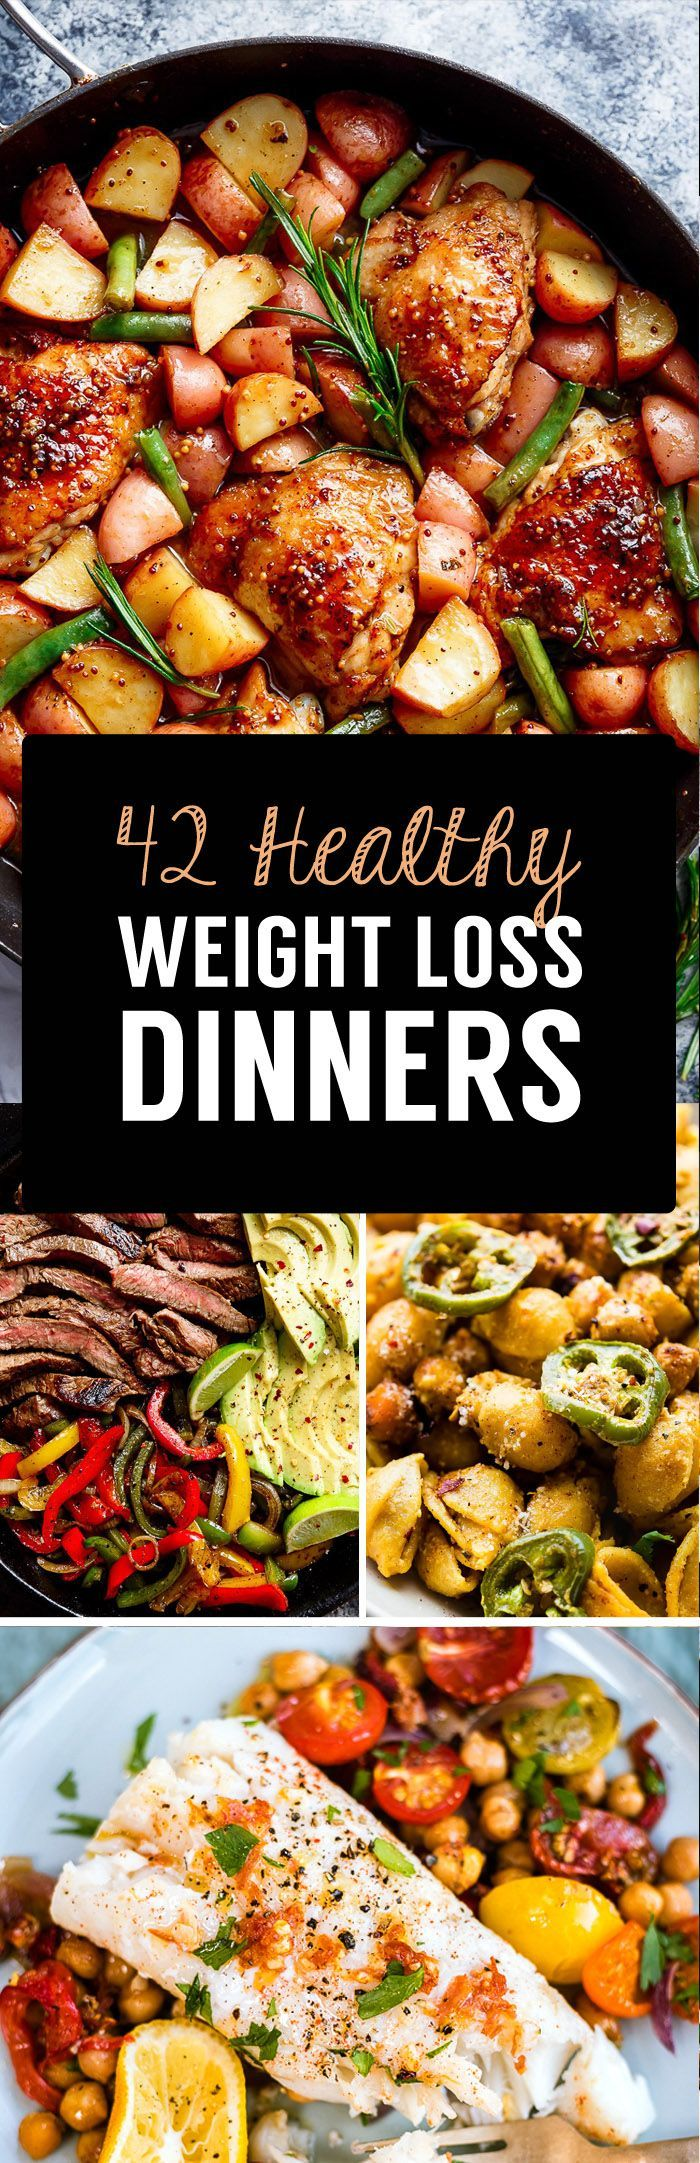 1755 best dinner images on pinterest baking center cheese salad 42 weight loss dinner recipes that will help you shrink belly fat forumfinder Gallery